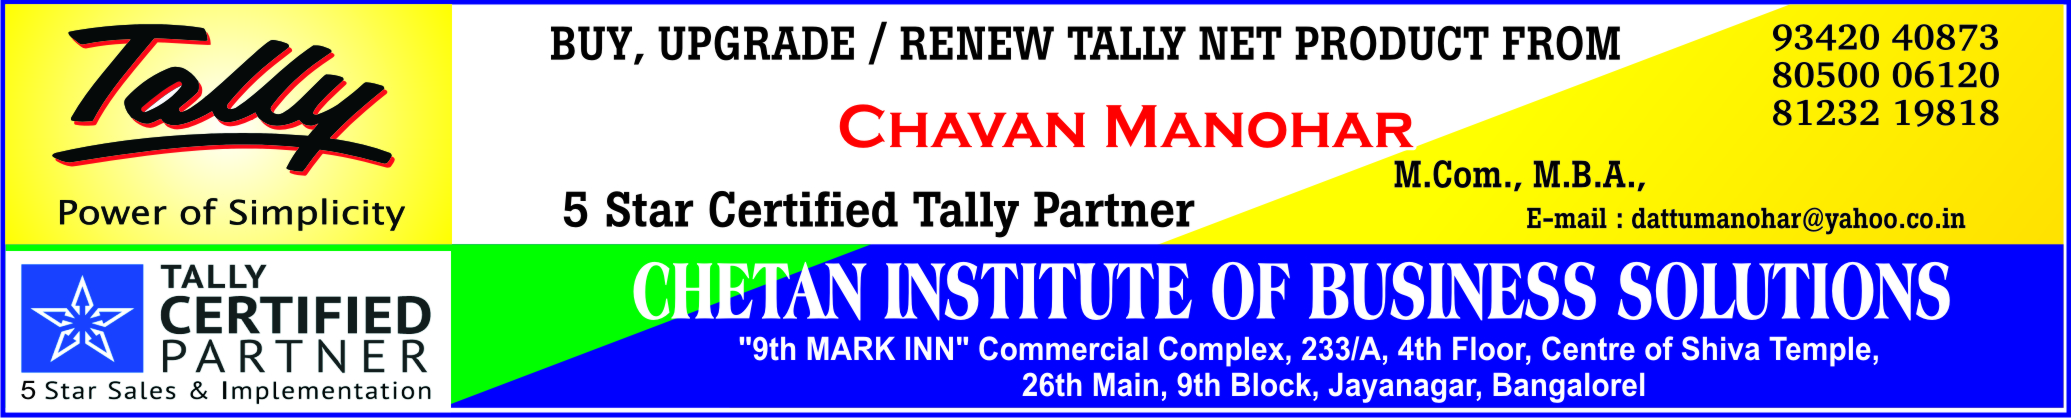 Chetan Institute Of Business Solutions In Bangalore